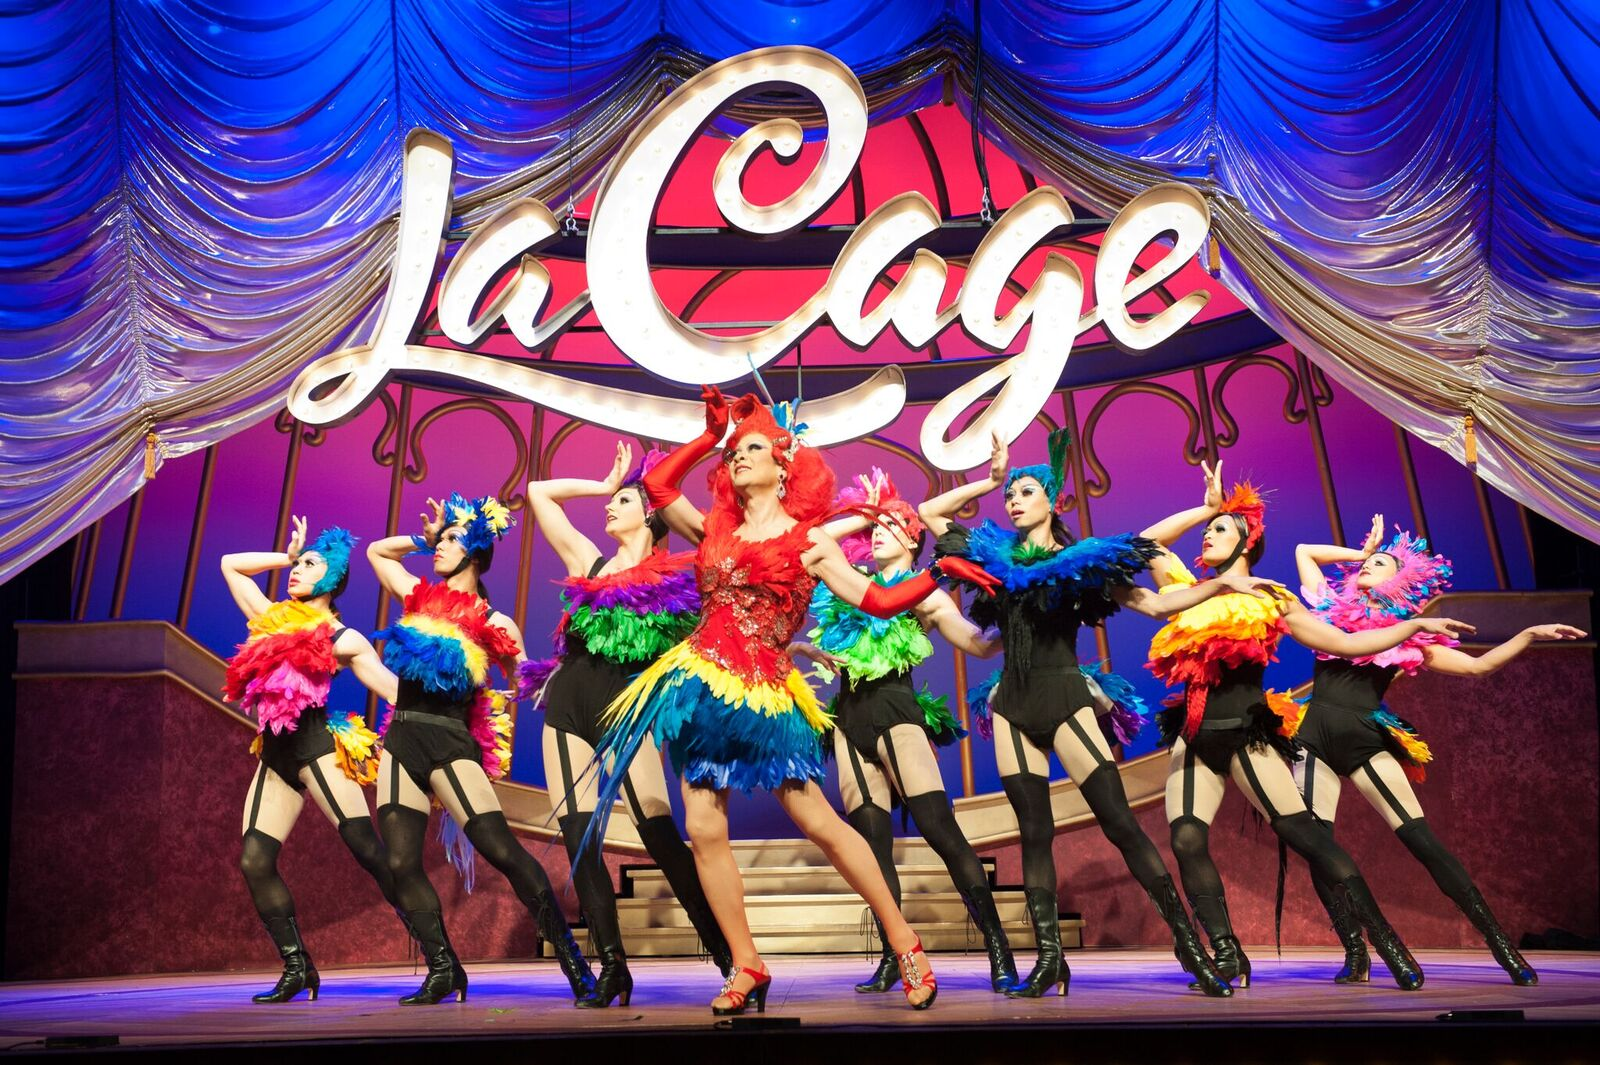 Regional Roundup: Top New Features This Week Around Our Broadway World 5/12 - LA CAGE AUX FOLLES in Singapore, LITTLE SHOP in Burmingham, and More!